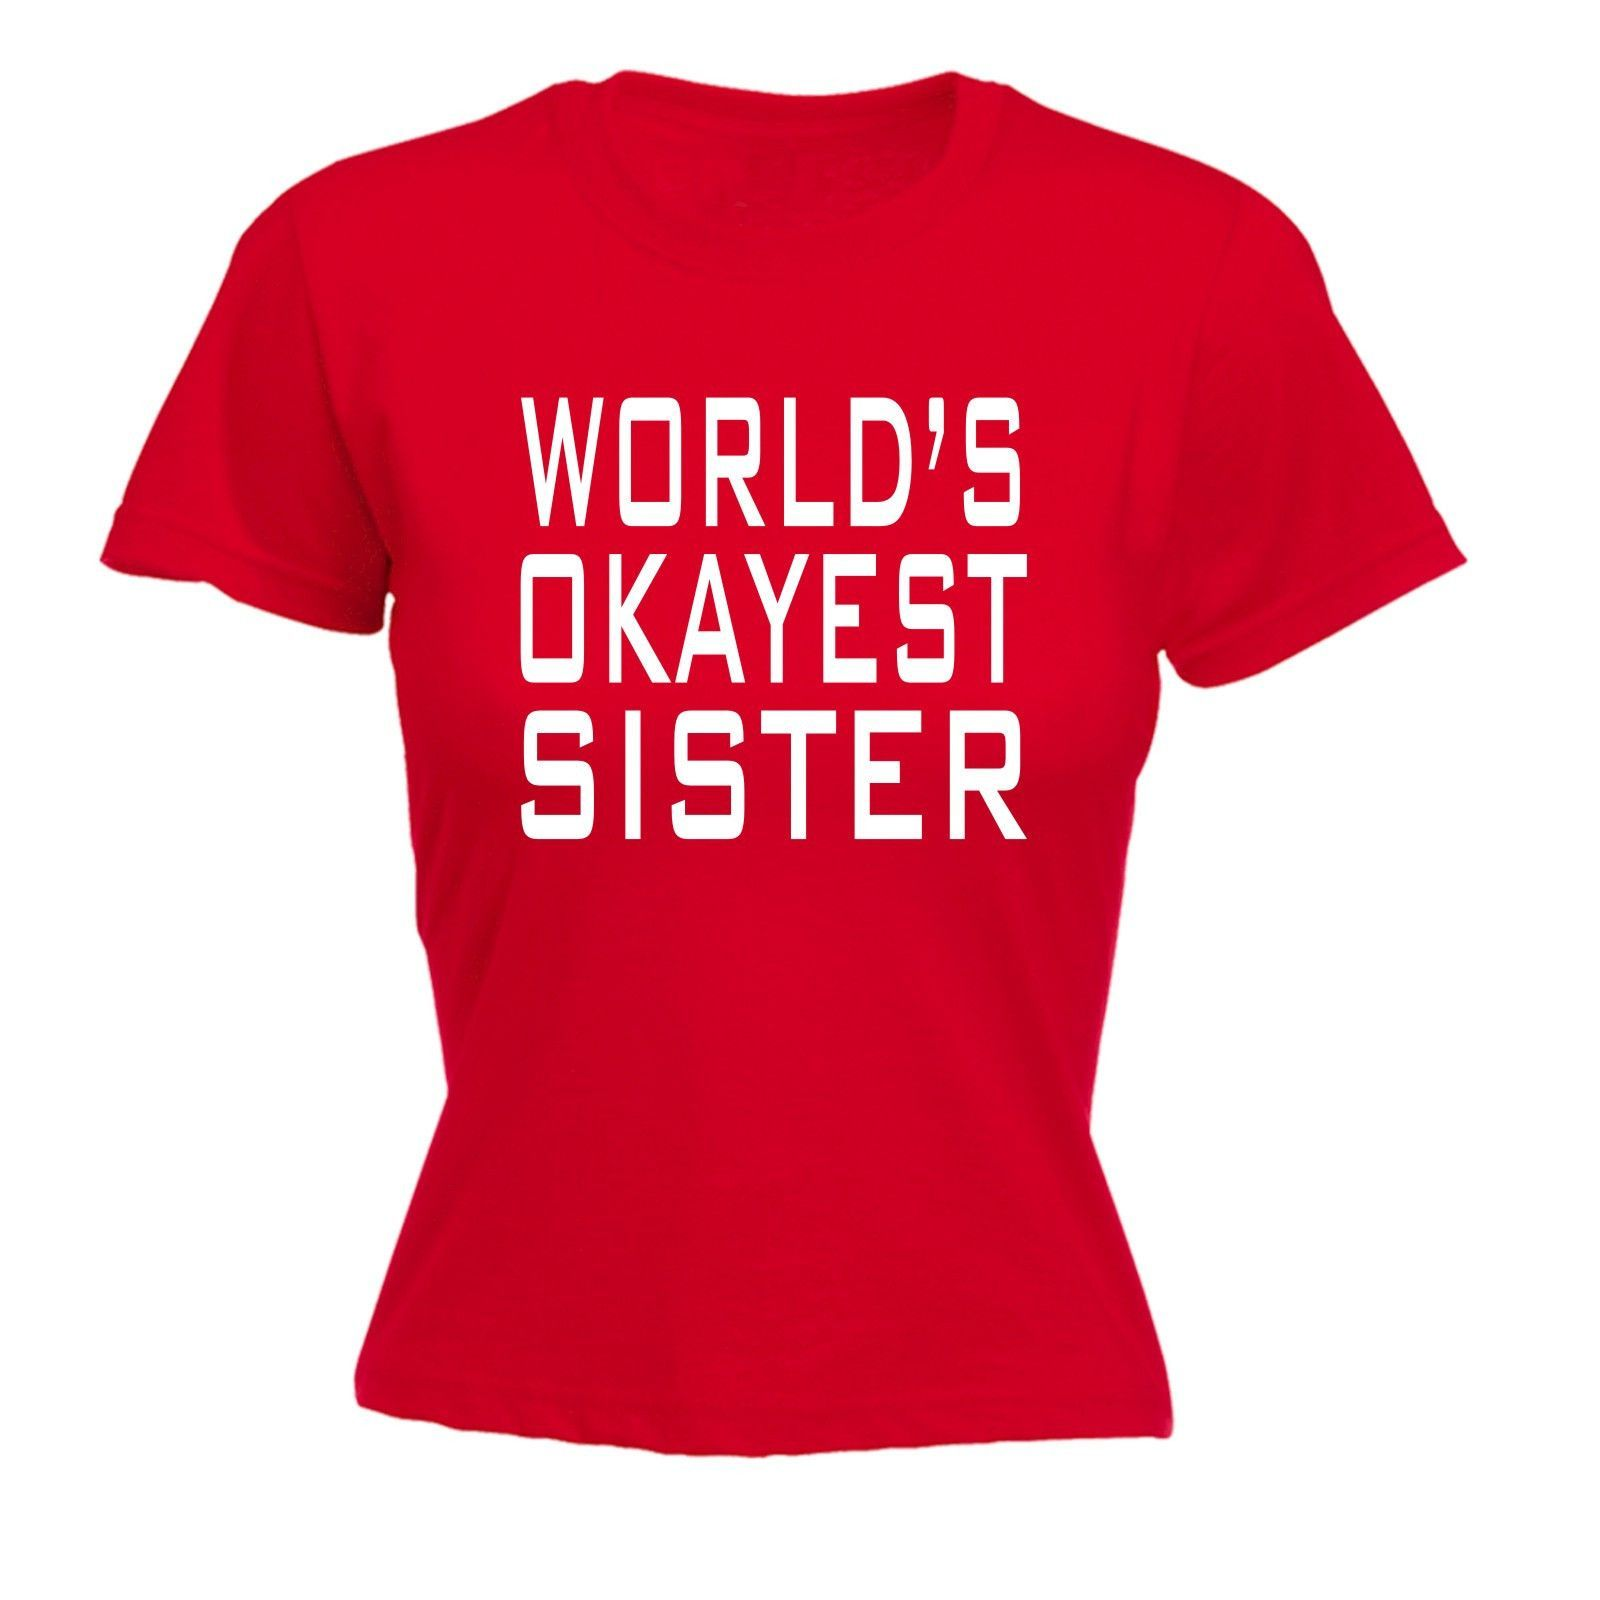 123t USA Women's World's Okayest Sister Funny T-Shirt